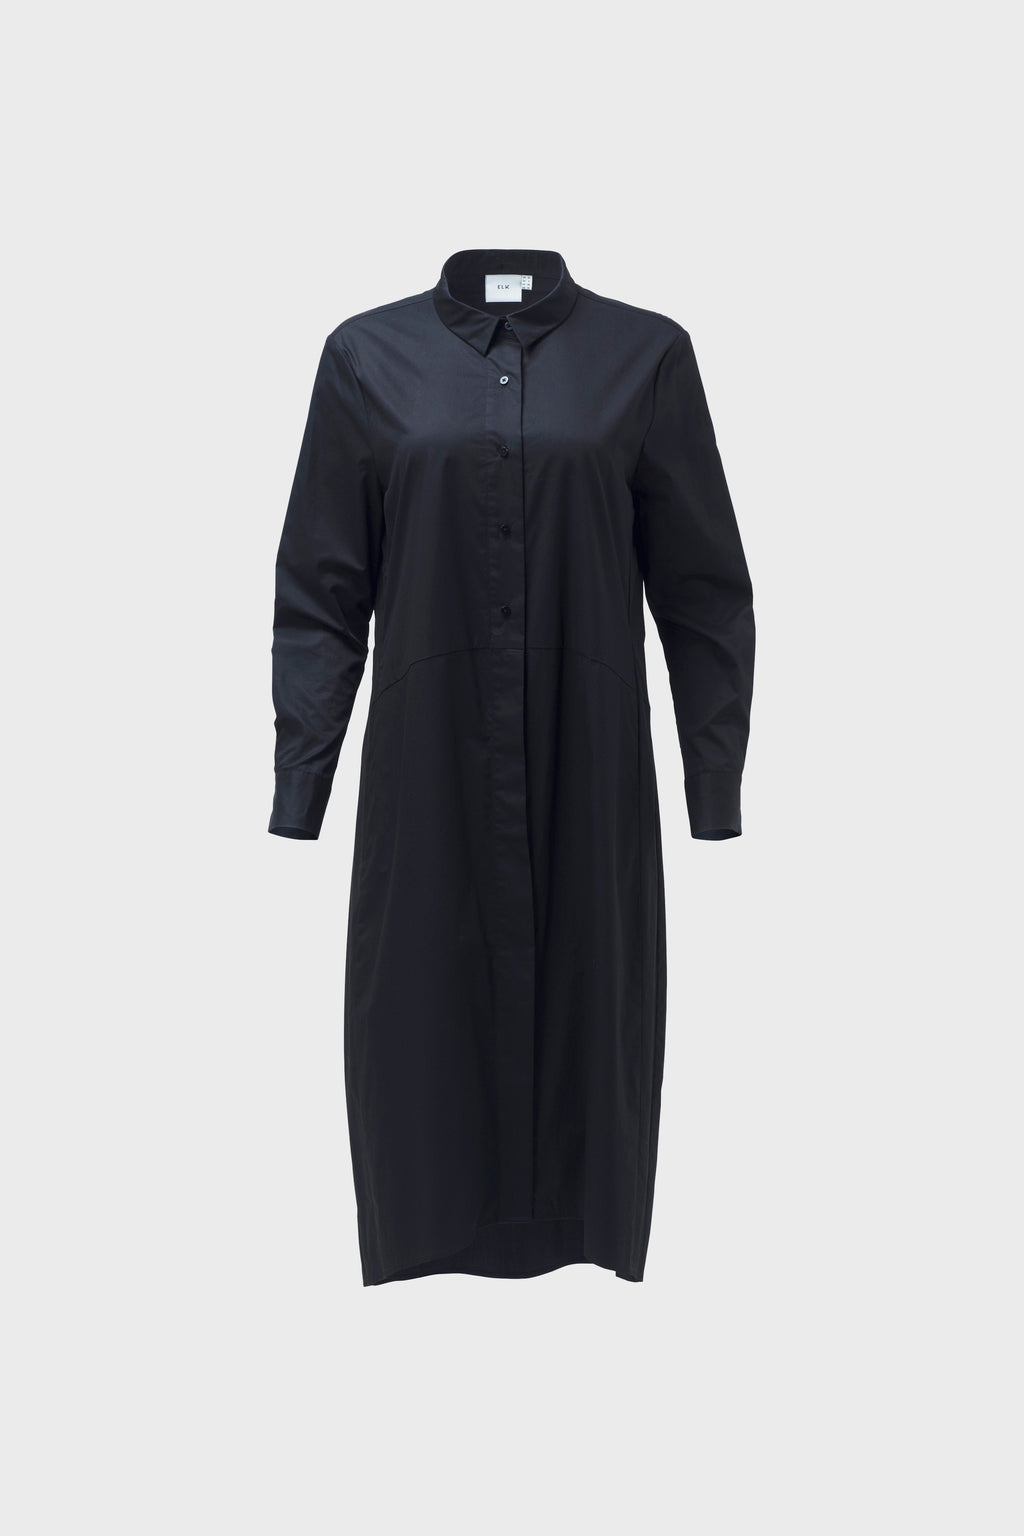 dania shirt dress - Meg & Me Boutique & Espresso